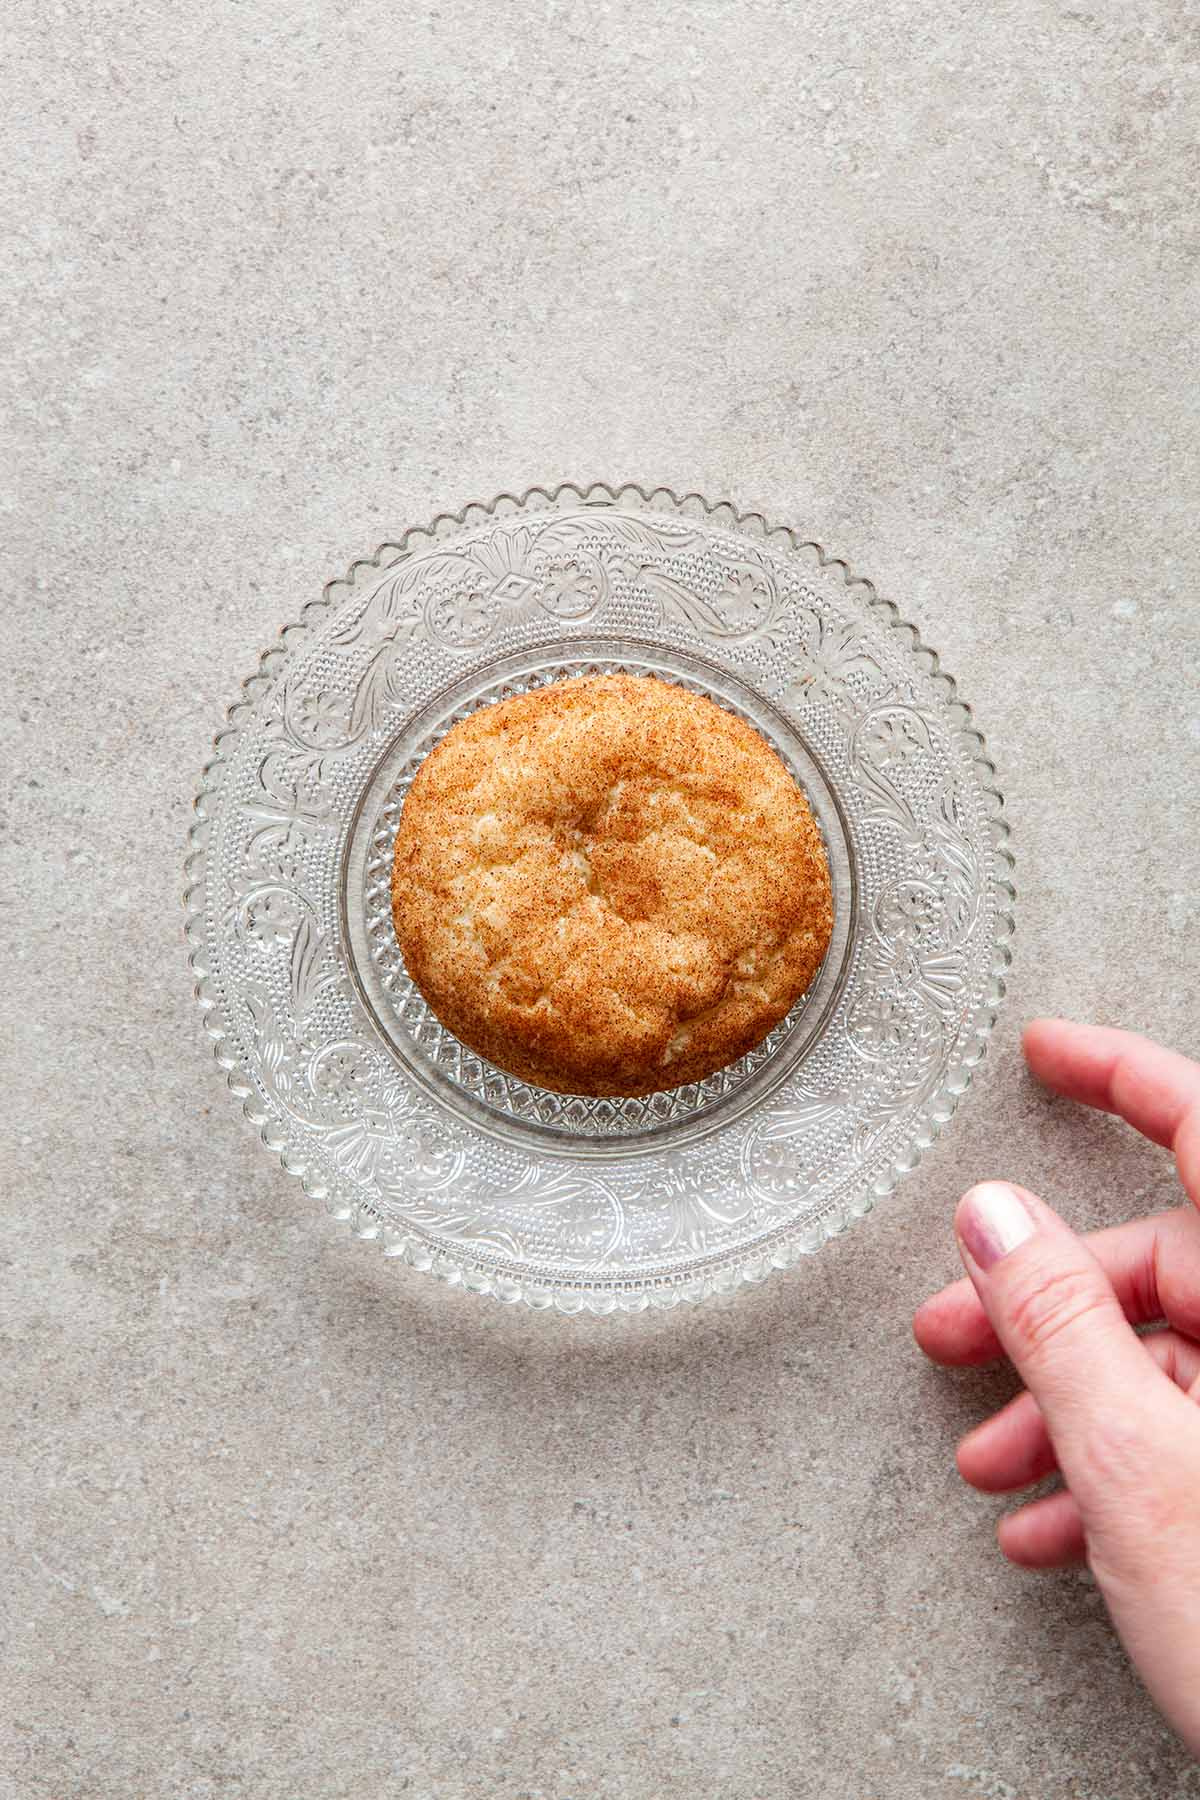 One cookie on a small glass plate with a hand reaching for the plate.